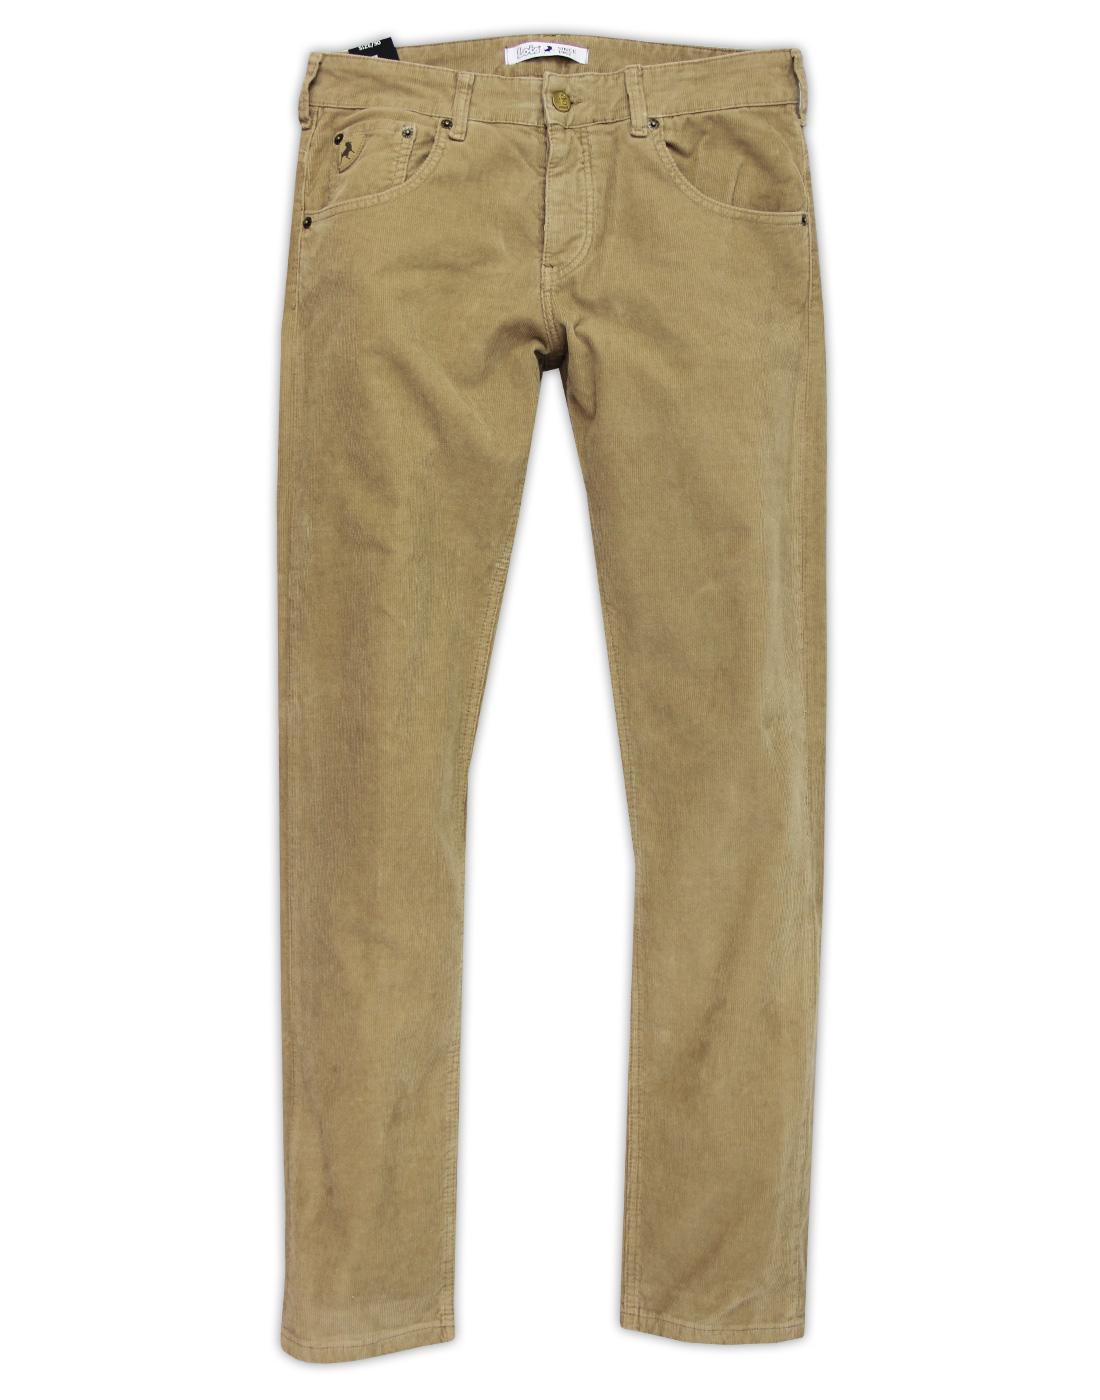 Sierra LOIS Mod Casuals Needle Cord Trousers (DS)